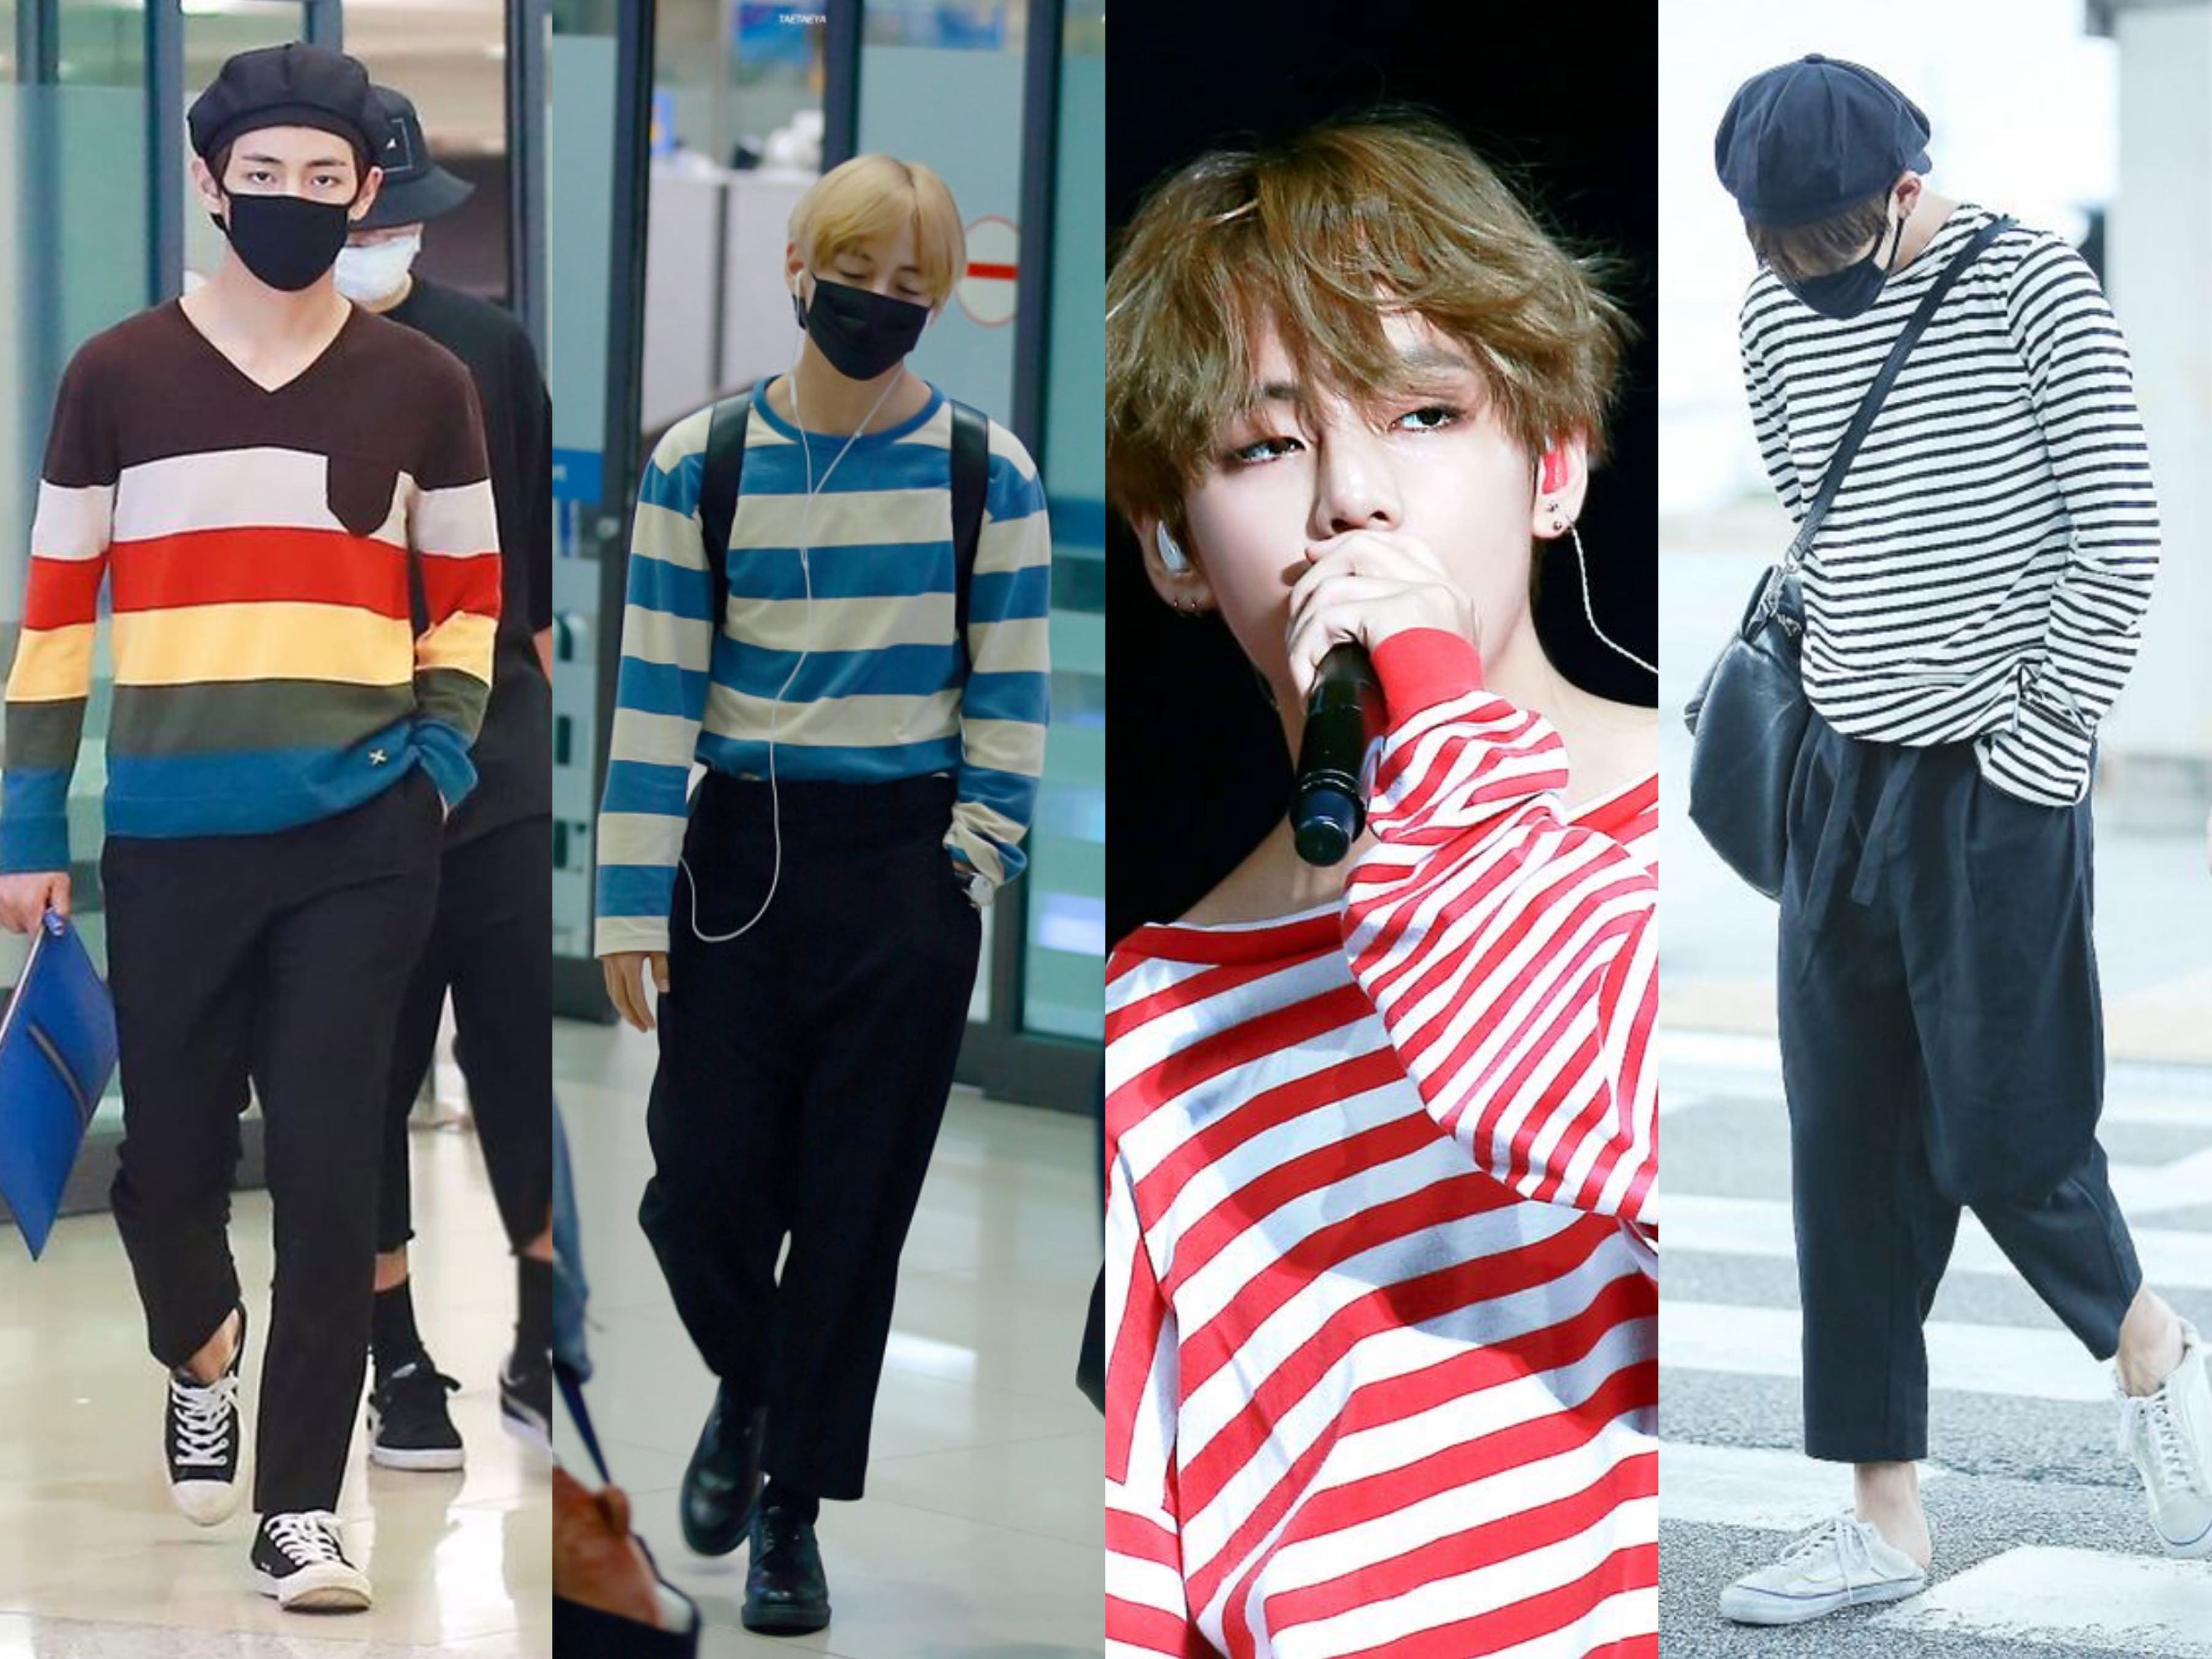 aace293edff755 9 Fashion Styles That BTS's V Is Known To Effortlessly Rock | Soompi